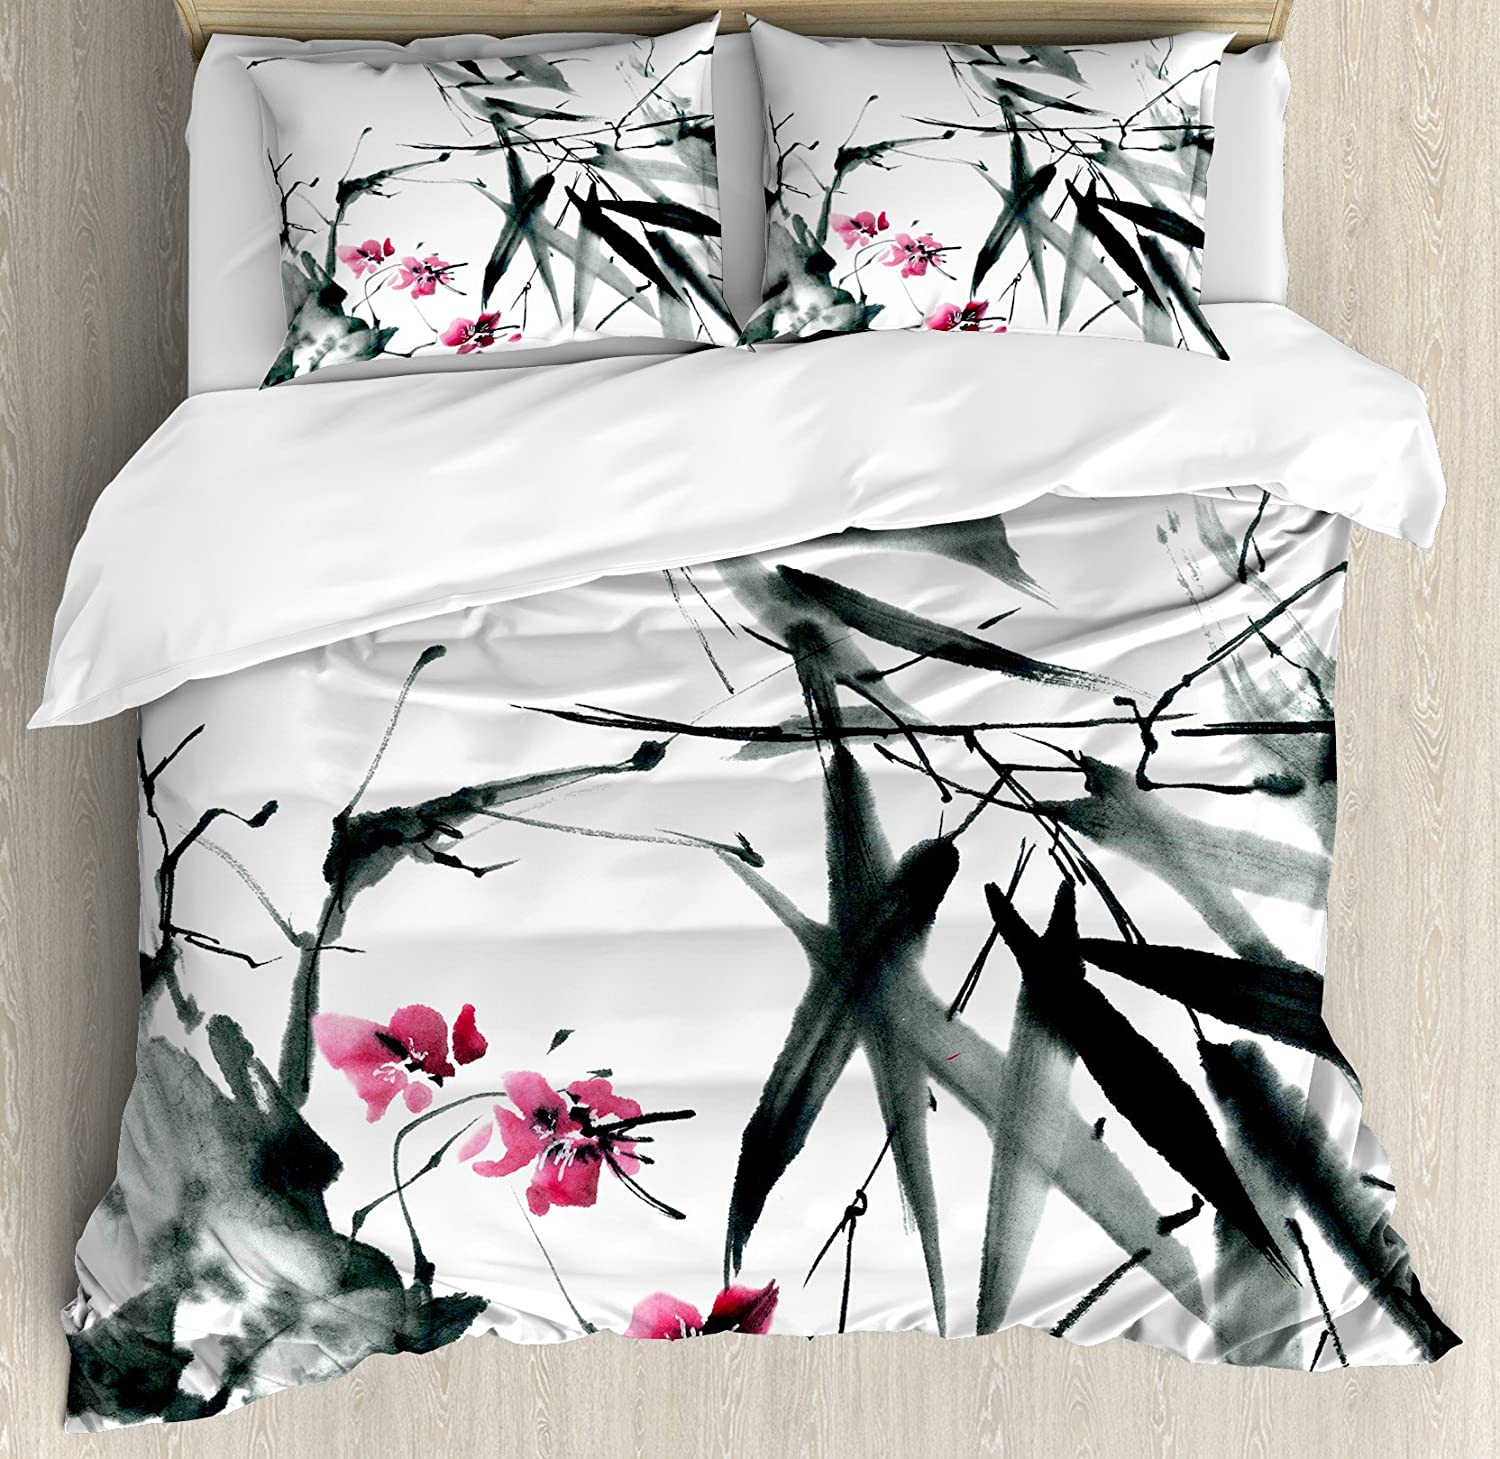 Ambesonne Japanese Duvet Cover Set, Natural Bamboo Stems Cherry Blossom Japanese Inspired Folk Print, Decorative 3 Piece Bedding Set with 2 Pillow Shams, King Size, Green Fuchsia